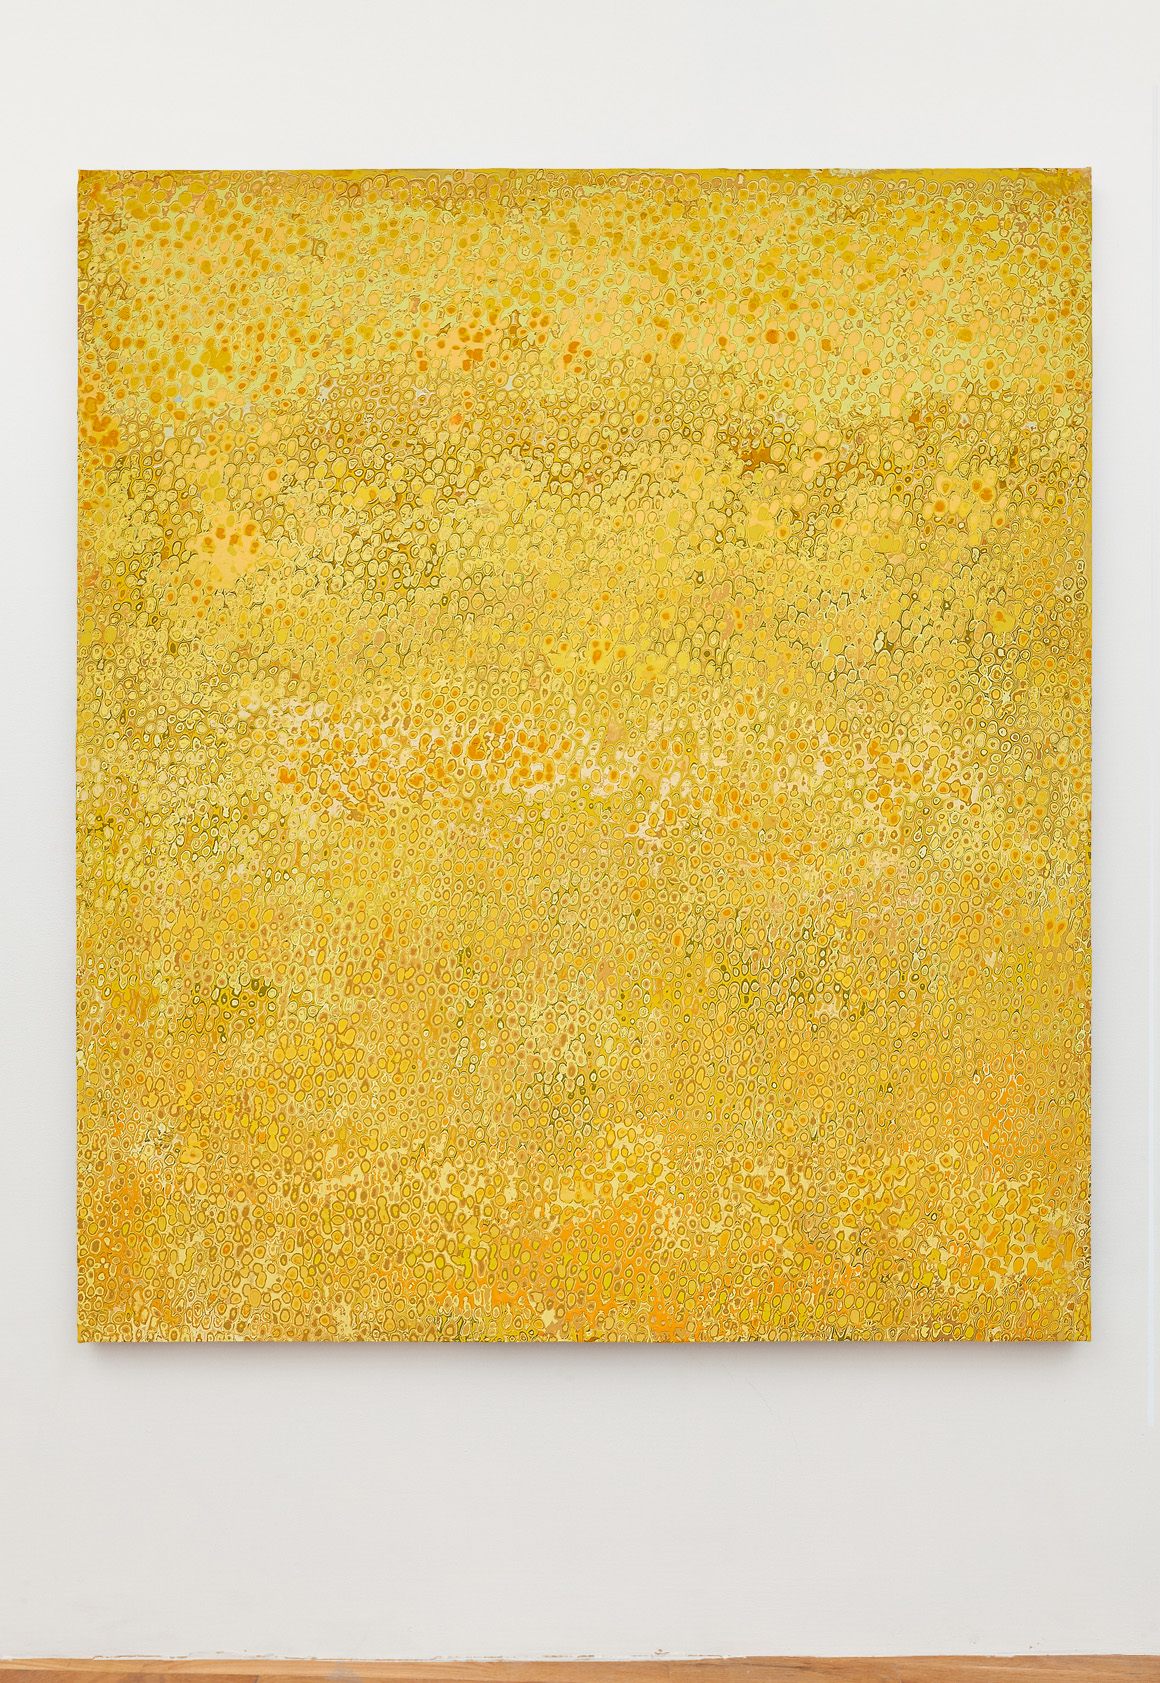 "<p><span class=""name"">Andrew Jensdotter</span><br><em>Yellow 70</em><span class='media'>Carved latex on canvas</span>80 x 68 in (203.2 x 172.7 cm)<br>2018<br></p>"